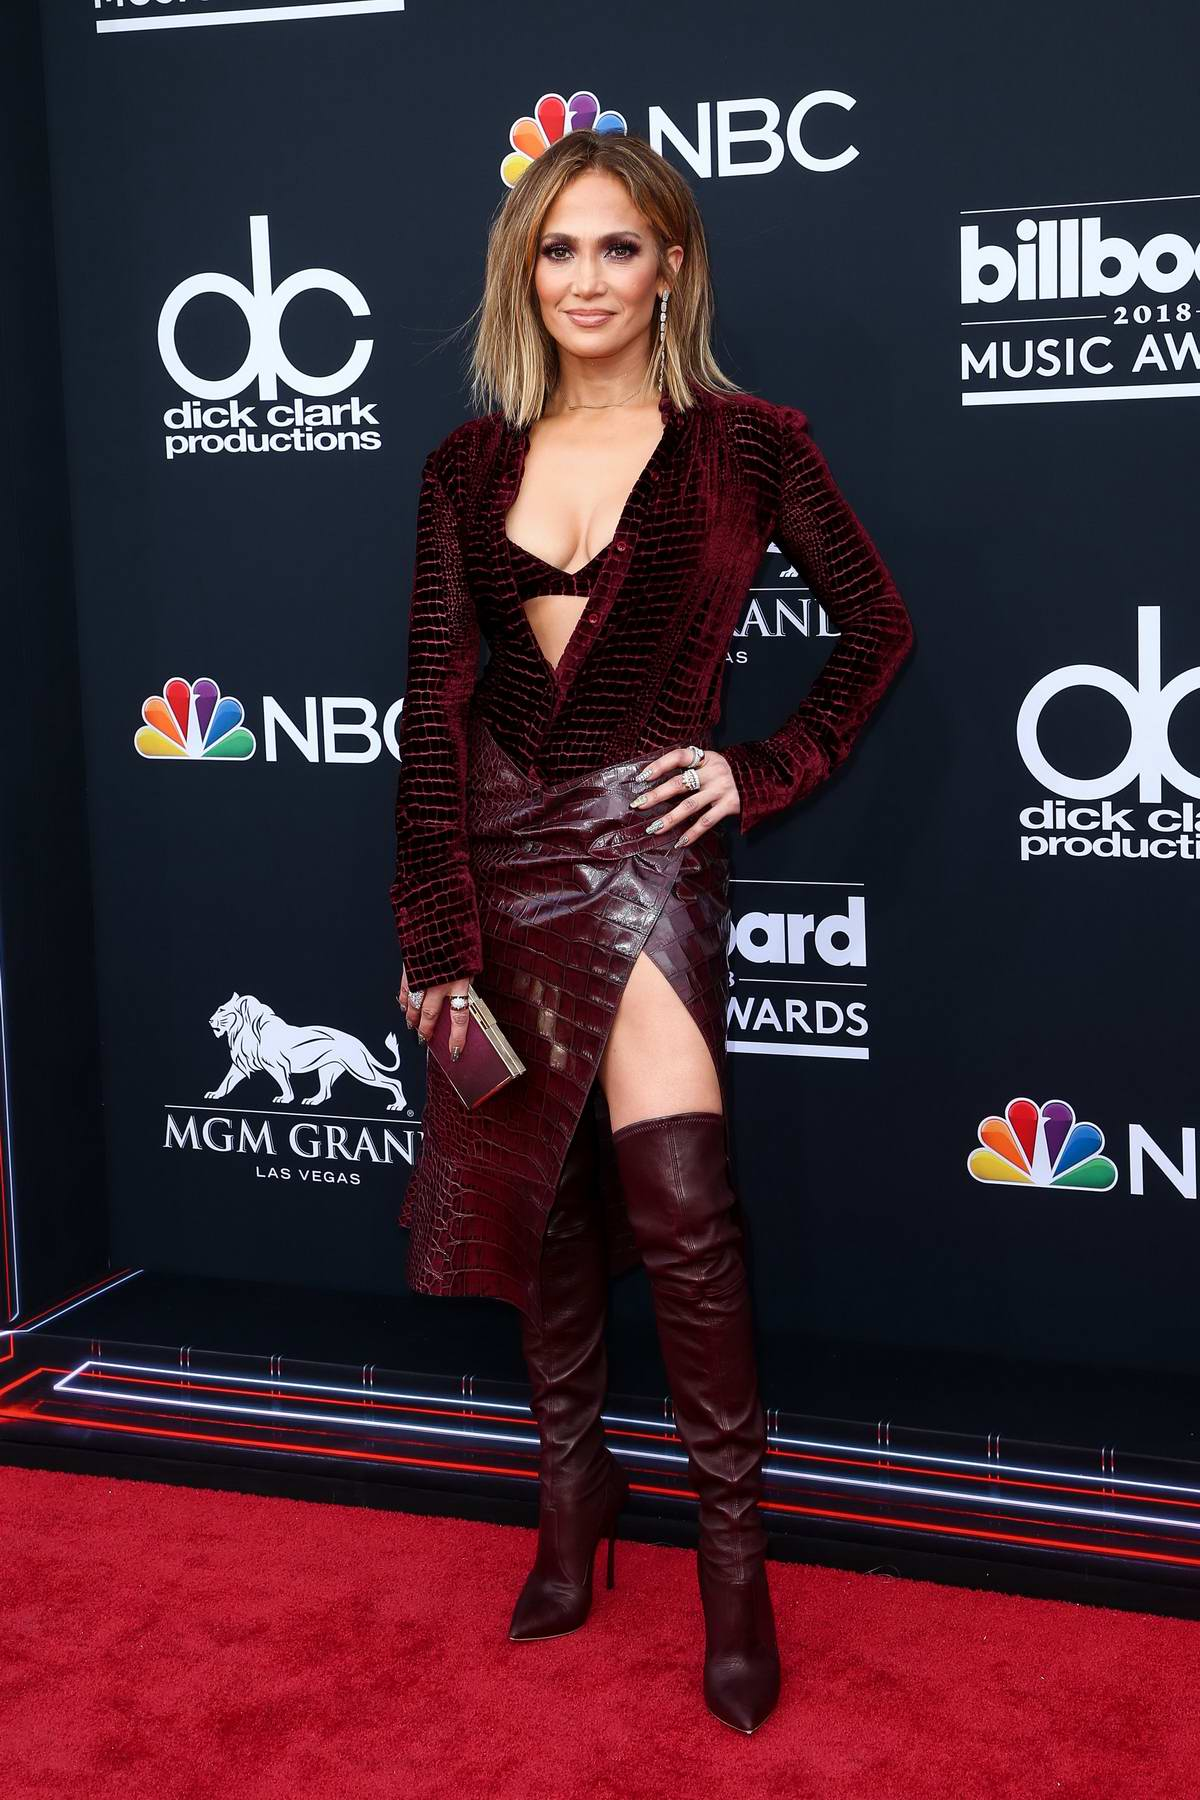 Jennifer Lopez attends the 2018 Billboard Music Awards at MGM Grand Garden in Las Vegas, Nevada